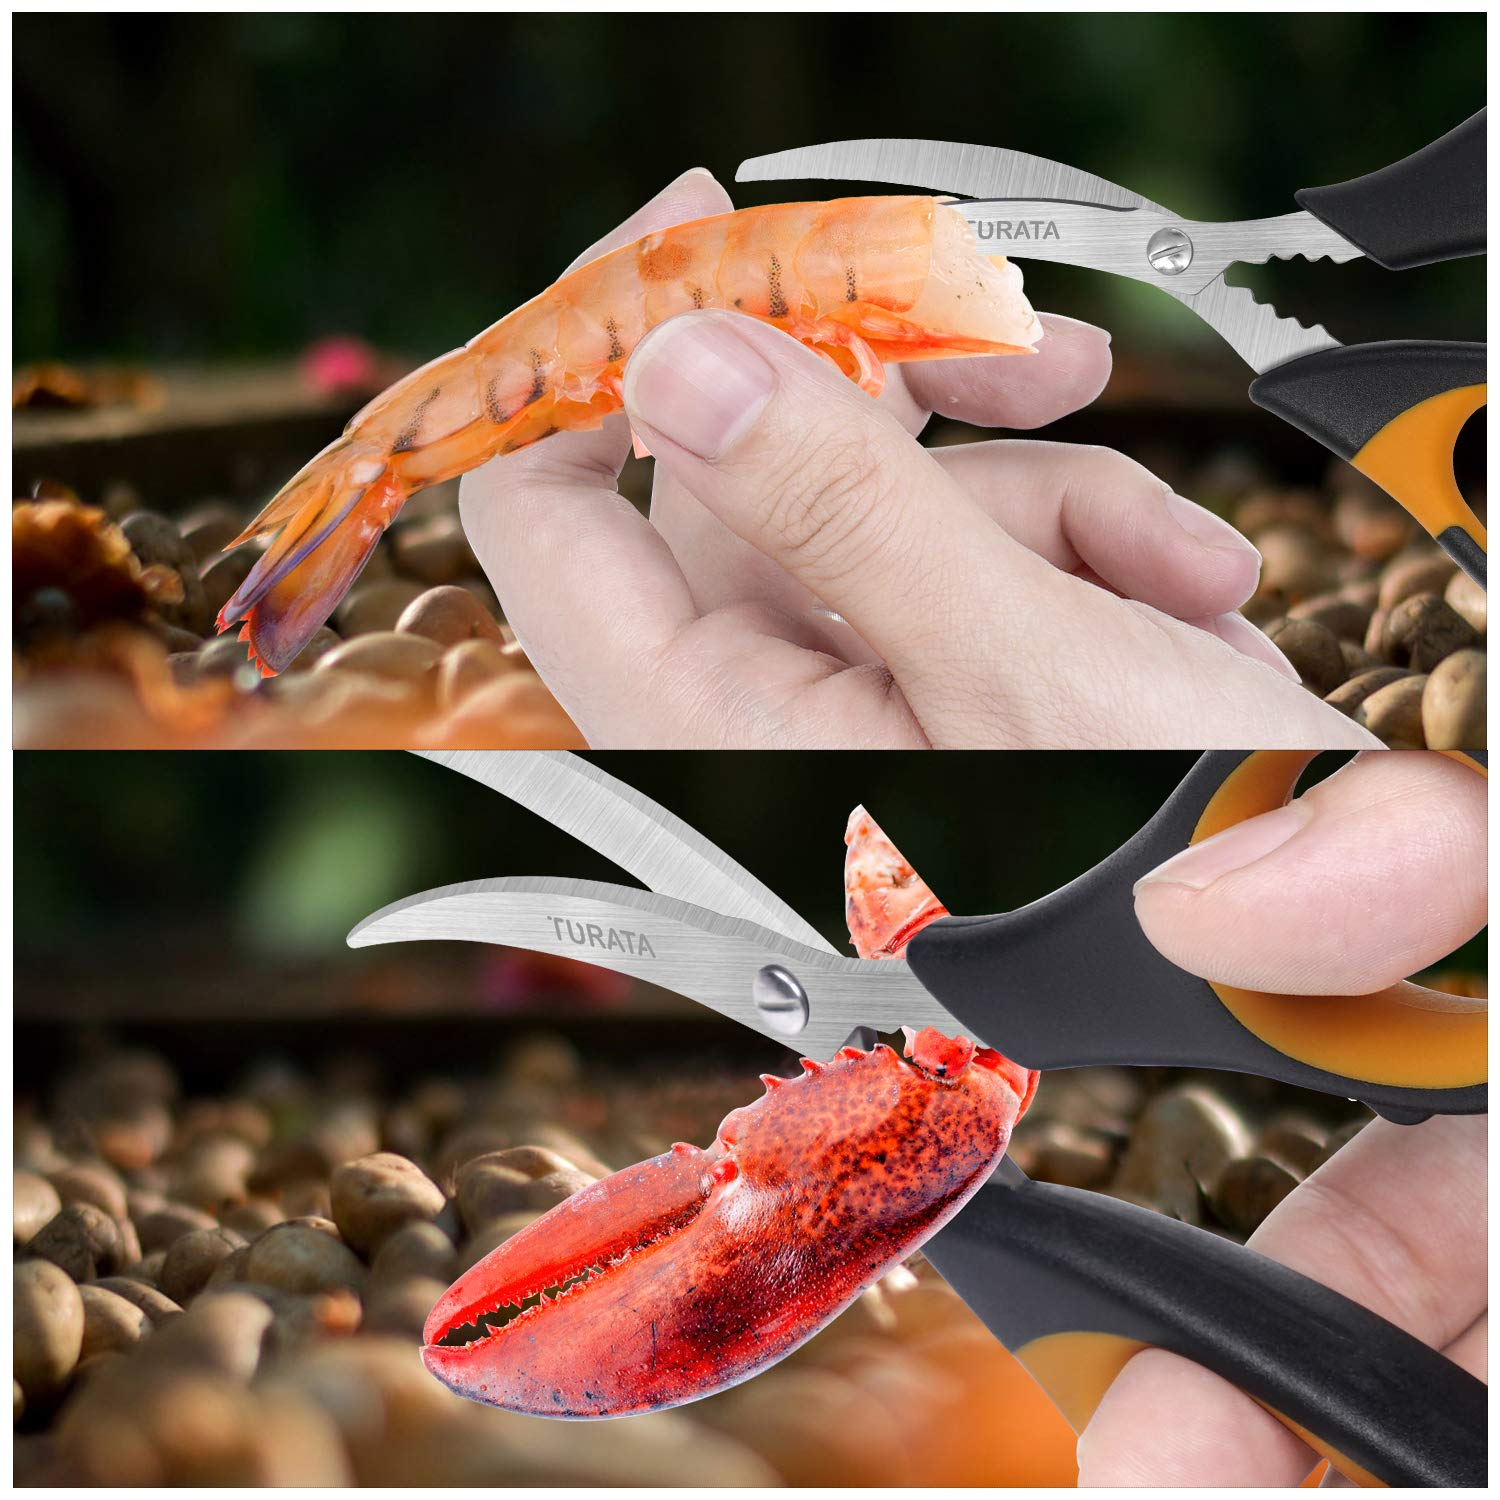 TURATA Kitchen Scissors Set Poultry Shears Seafood Lobster Scissors Heavy Duty Crab Scissors Cooking Utility Scissors Culinary Scissors Multifunctional Lefty Shears for Meat and Seafood